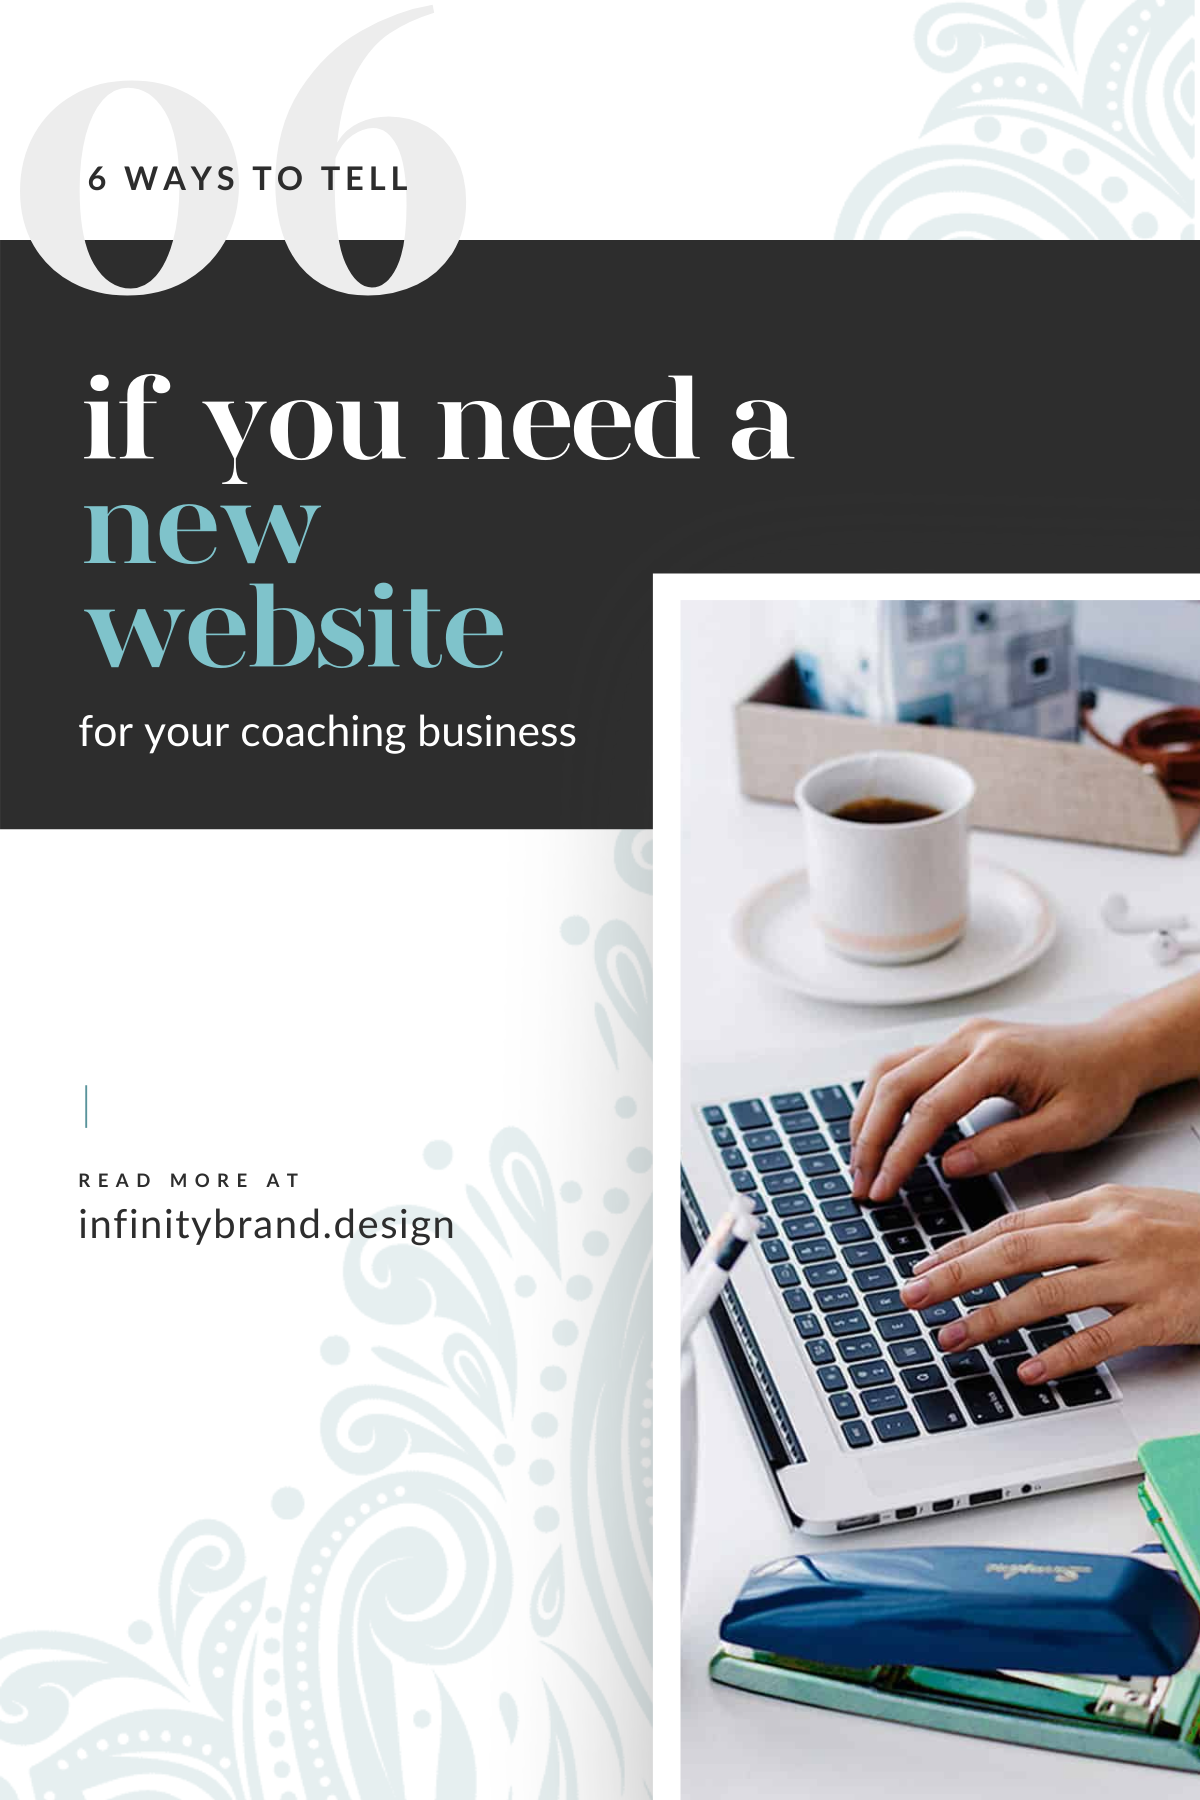 These coaching website tips will help you gauge if your site is performing optimally or if it's time to invest in your business with a new website. Your website is the most powerful marketing piece you can have for your coaching business. It plays a vital role in whether clients book your services or buy your online course. This valuable piece of marketing is a living document that needs to be maintained to ensure it's helping, not hindering, your coaching business. If your website isn't pulling its weight, you're leaving money on the table.